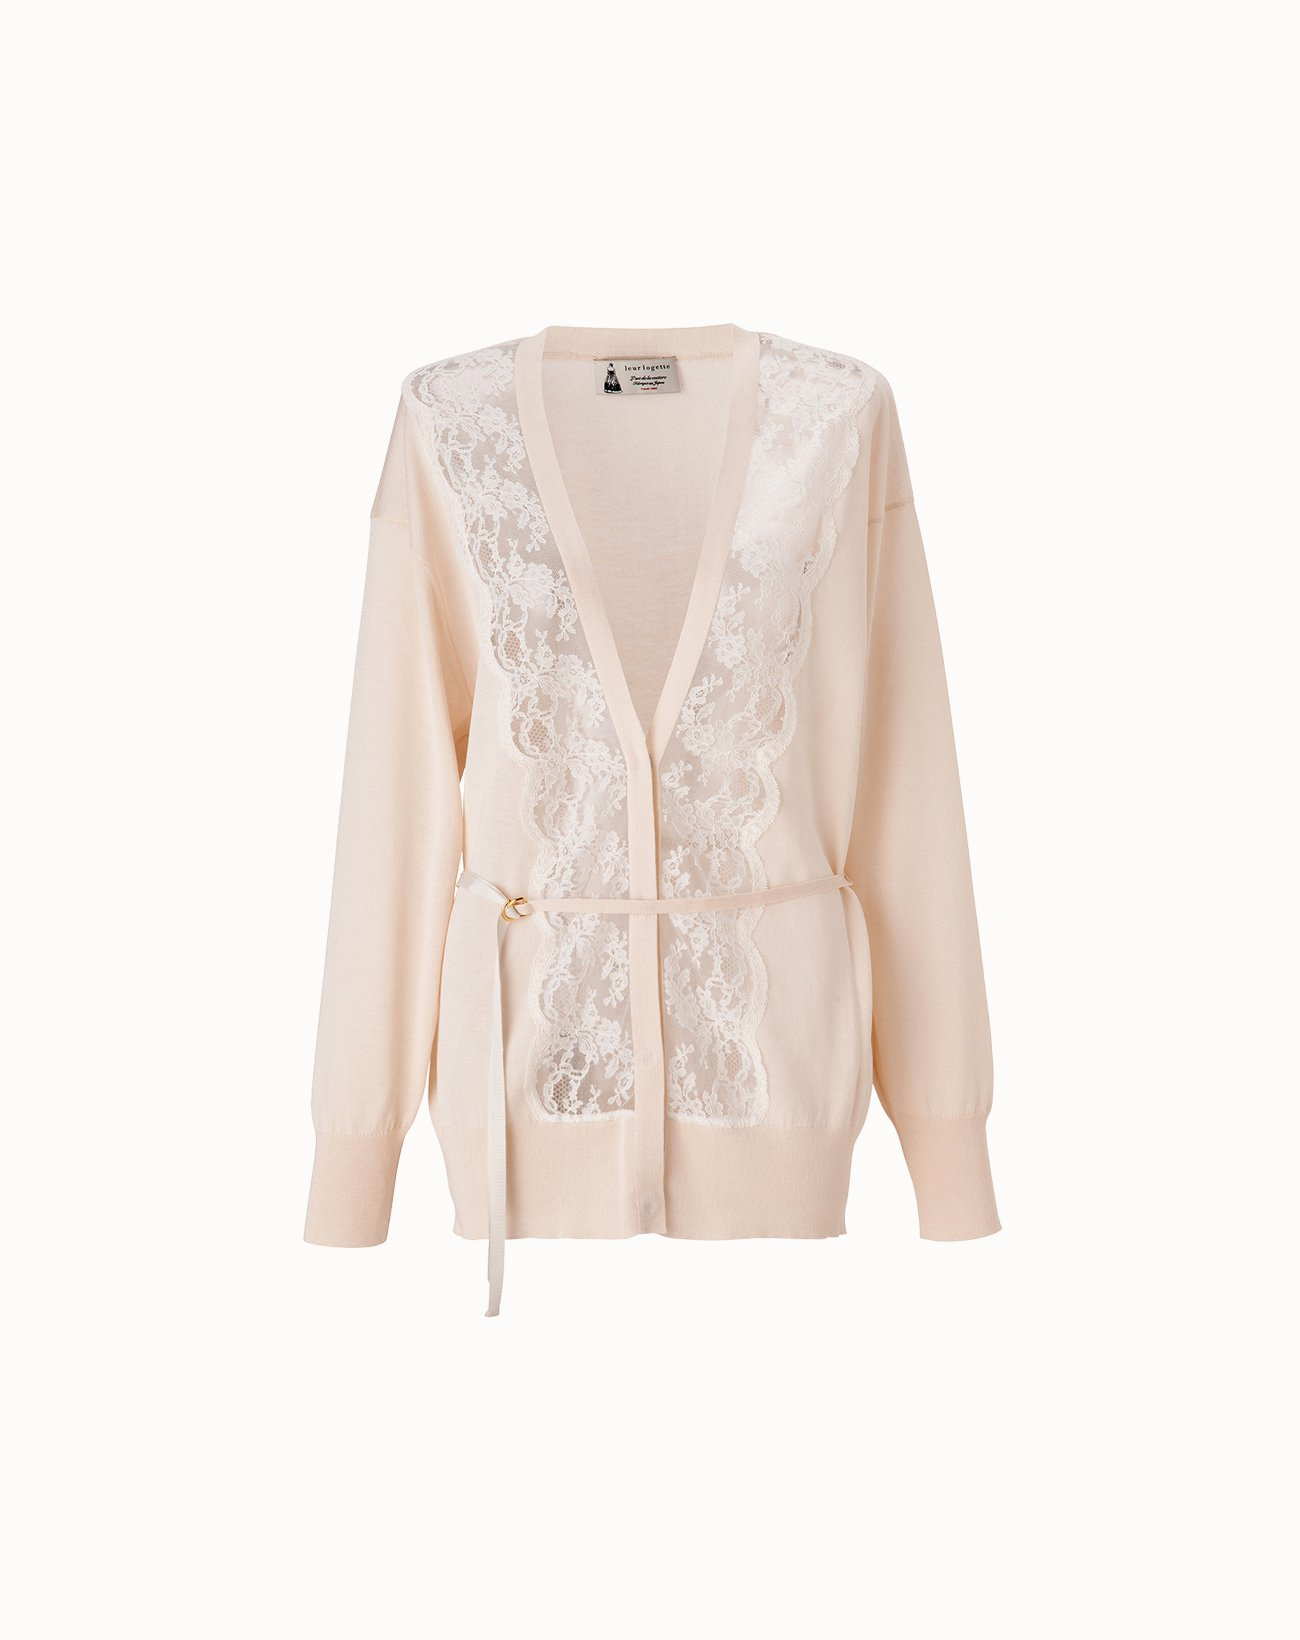 Cotton Silk Cardigan - Off White